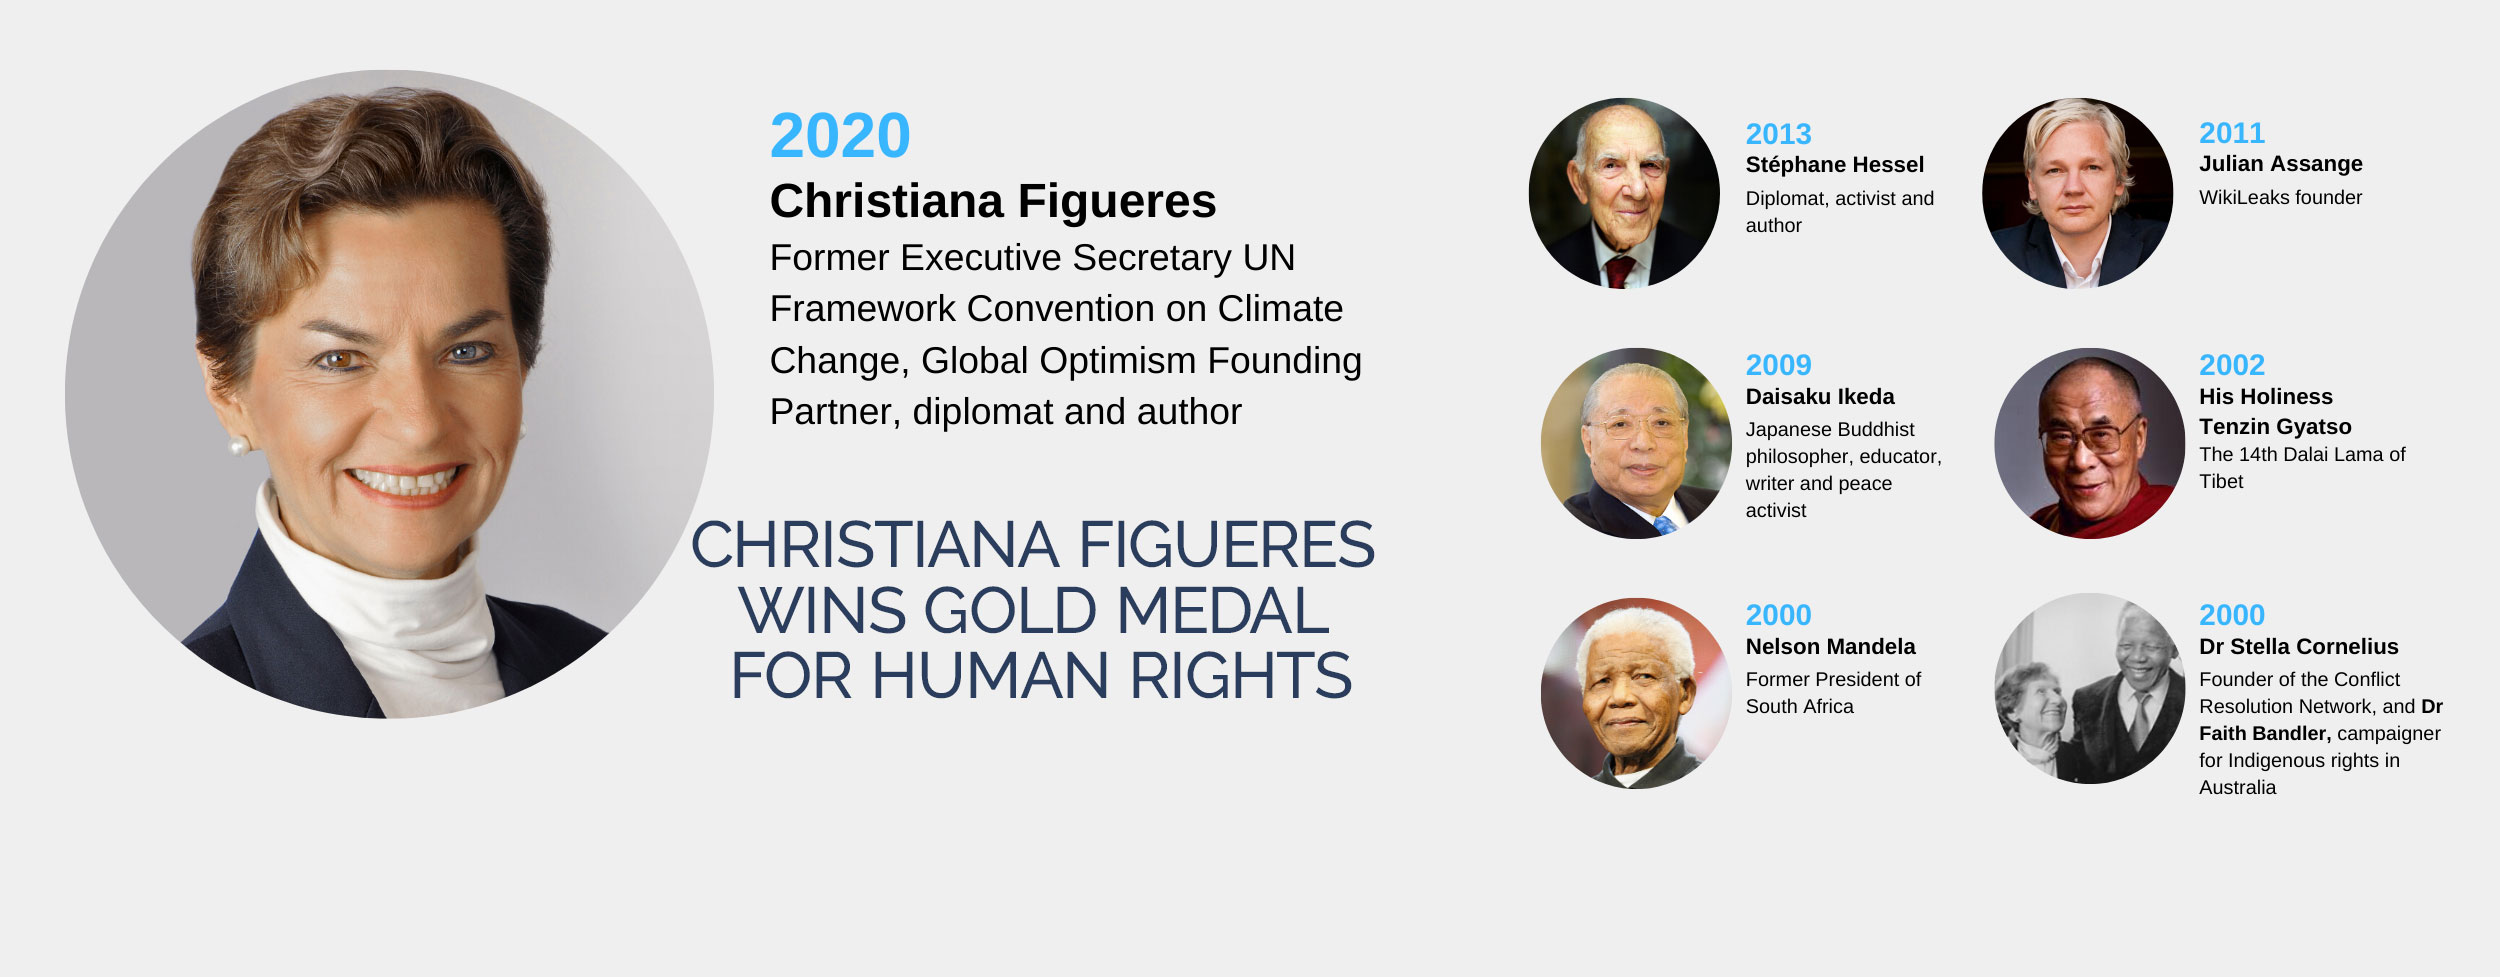 CHRISTIANA FIGUERES WINS GOLD MEDAL FOR HUMAN RIGHTS